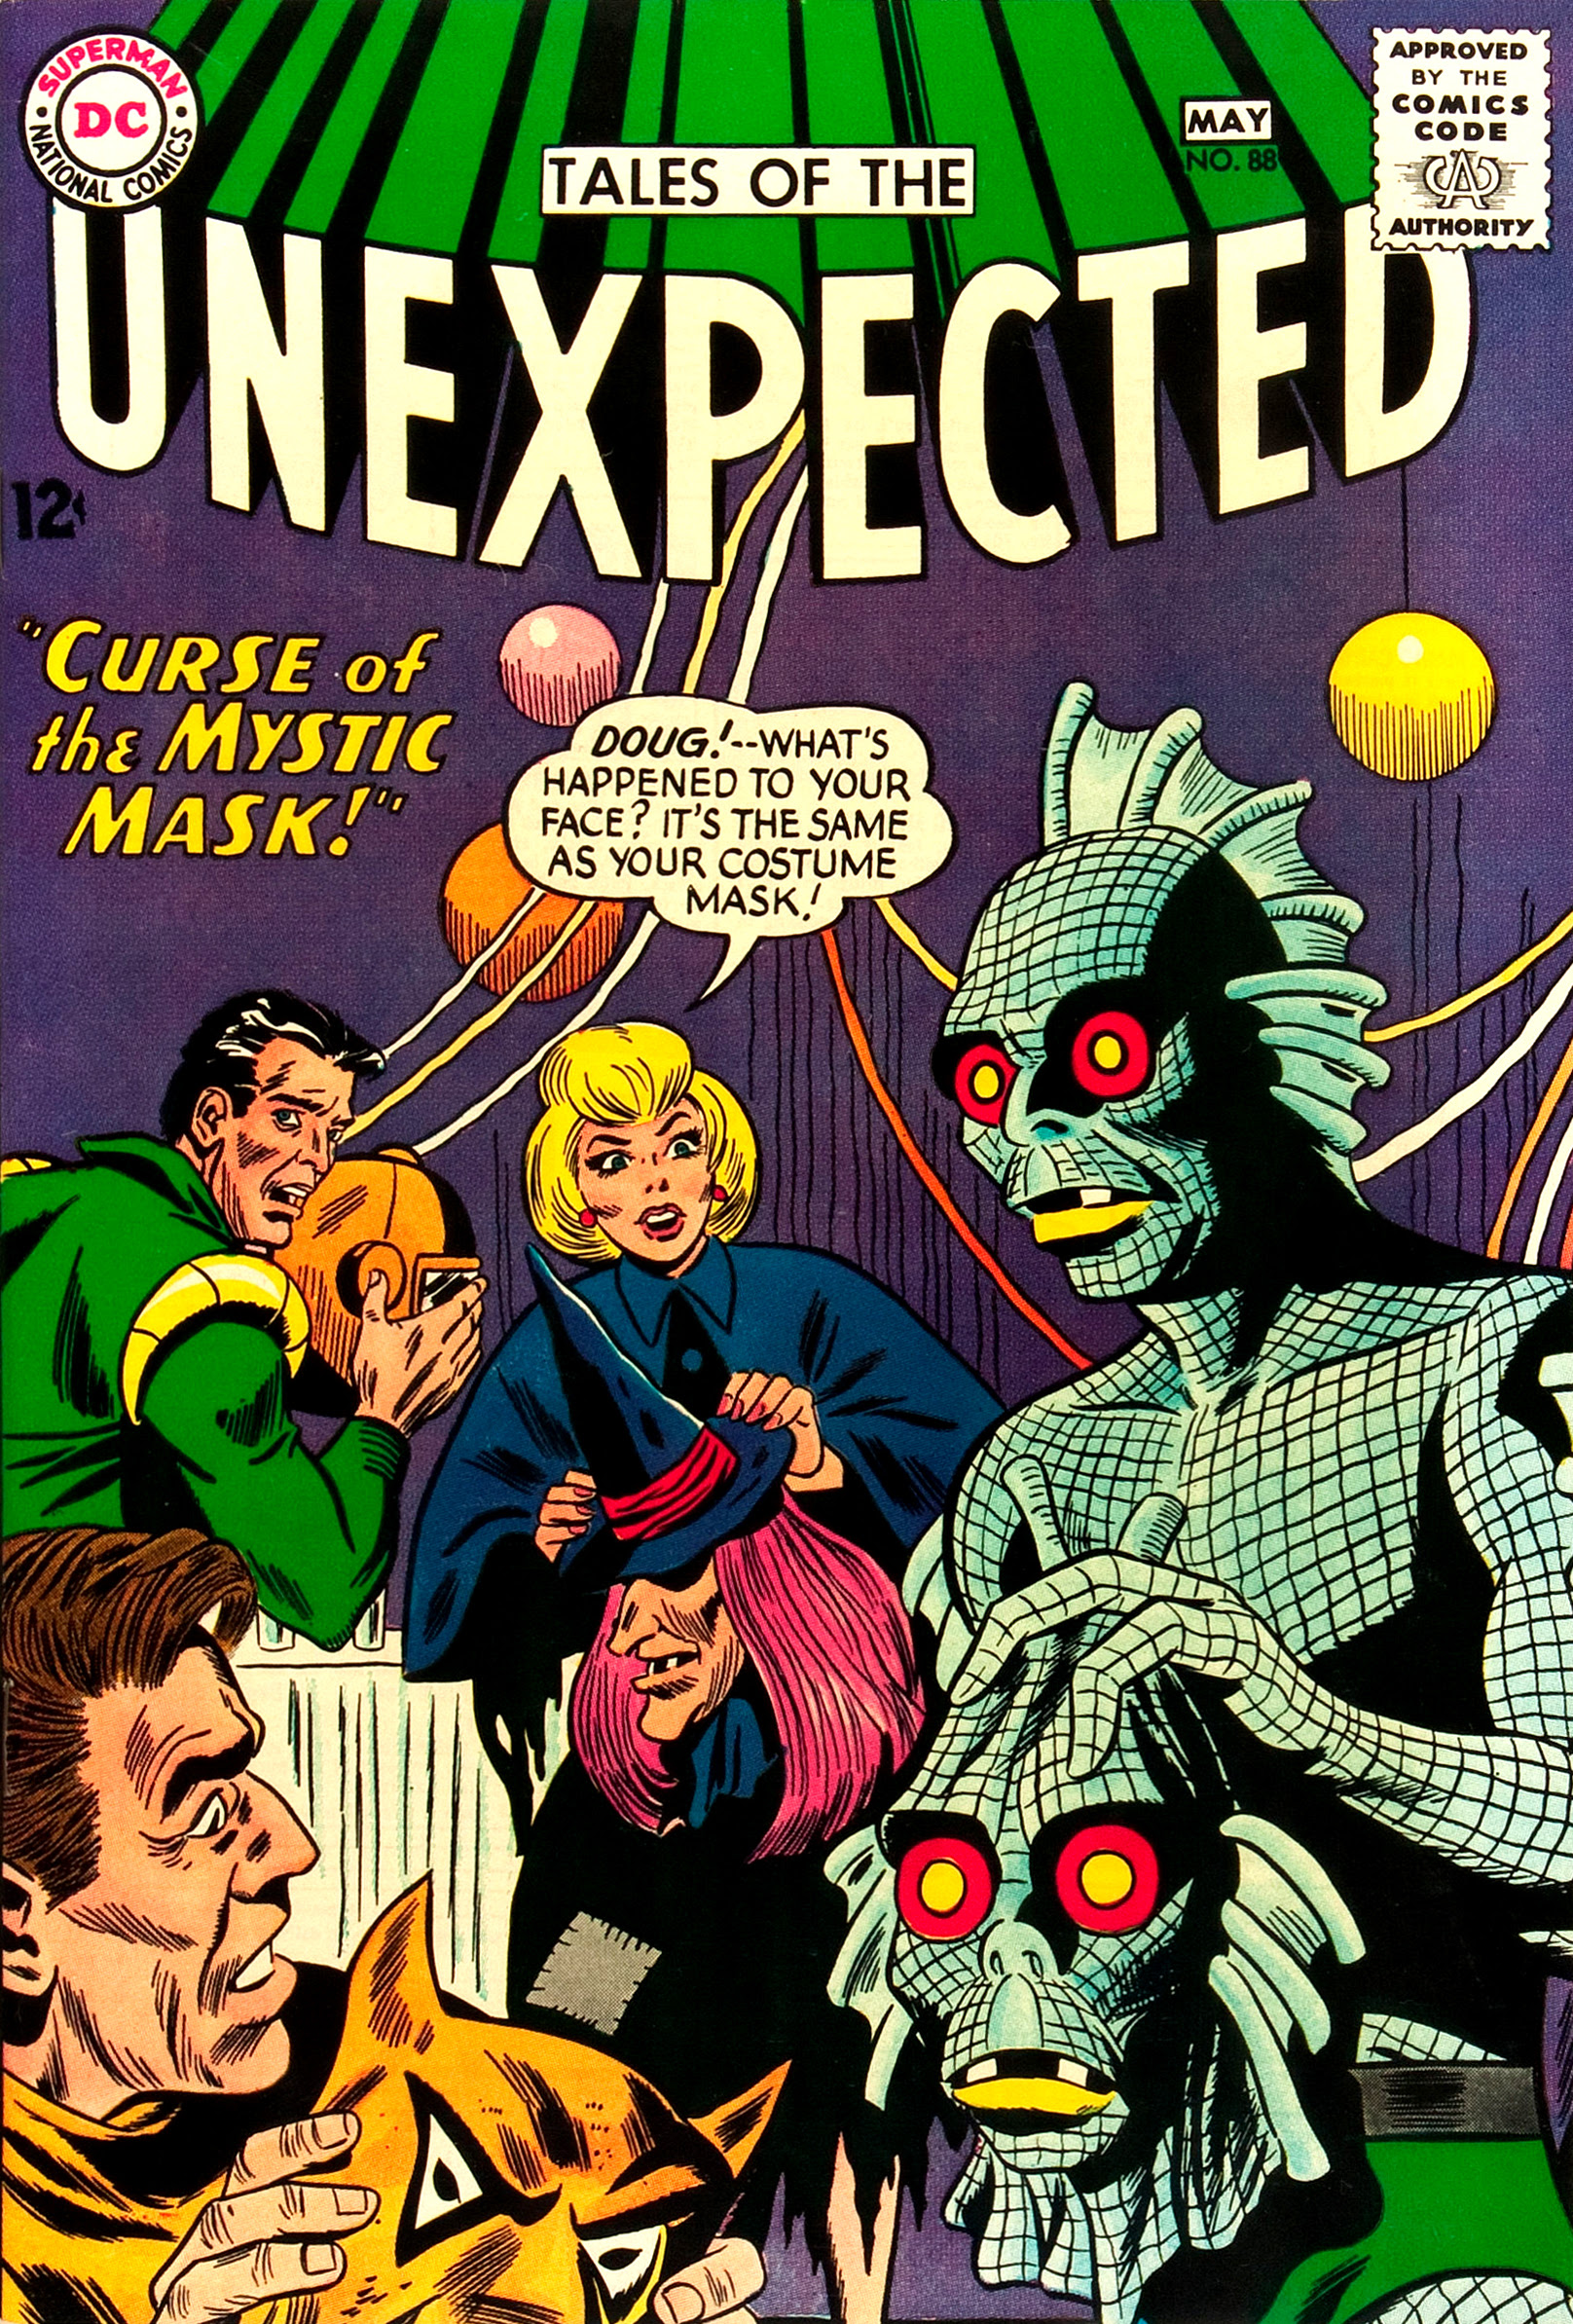 Tales of the Unexpected #88 (DC, 1965) Dick Dillin cover